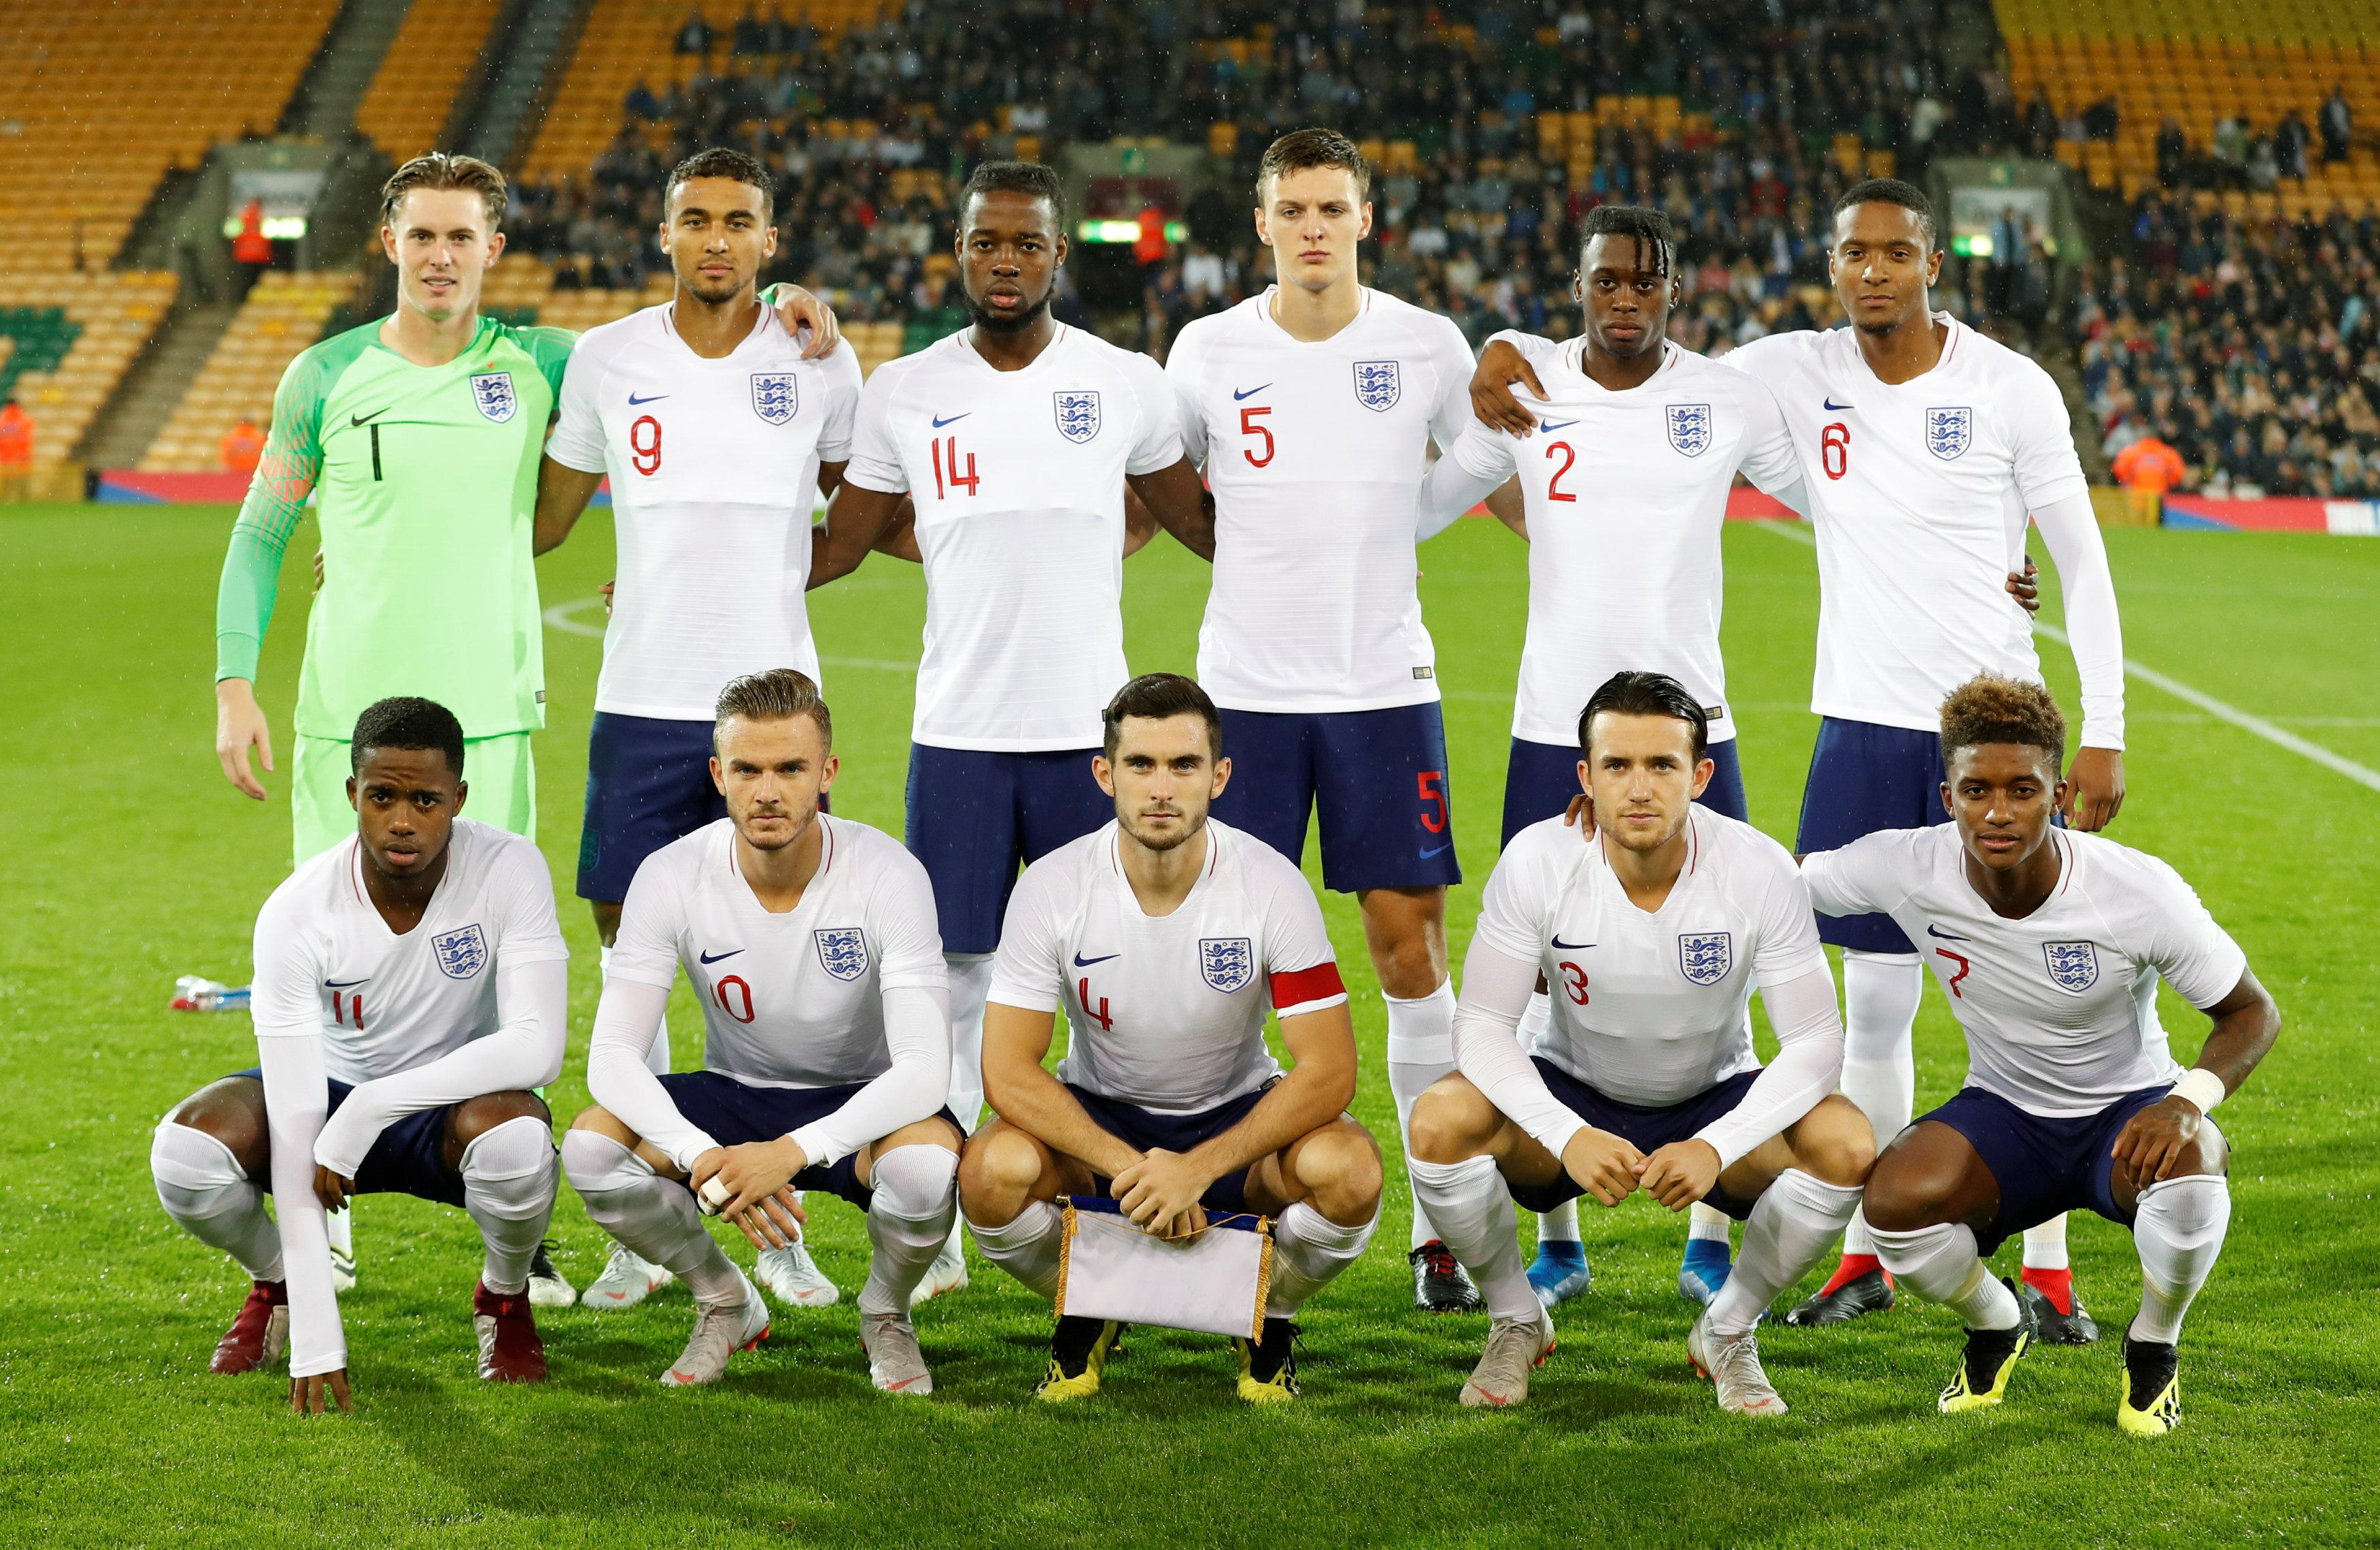 England's Under-21 side remain on course to qualify for the European Championship's next summer